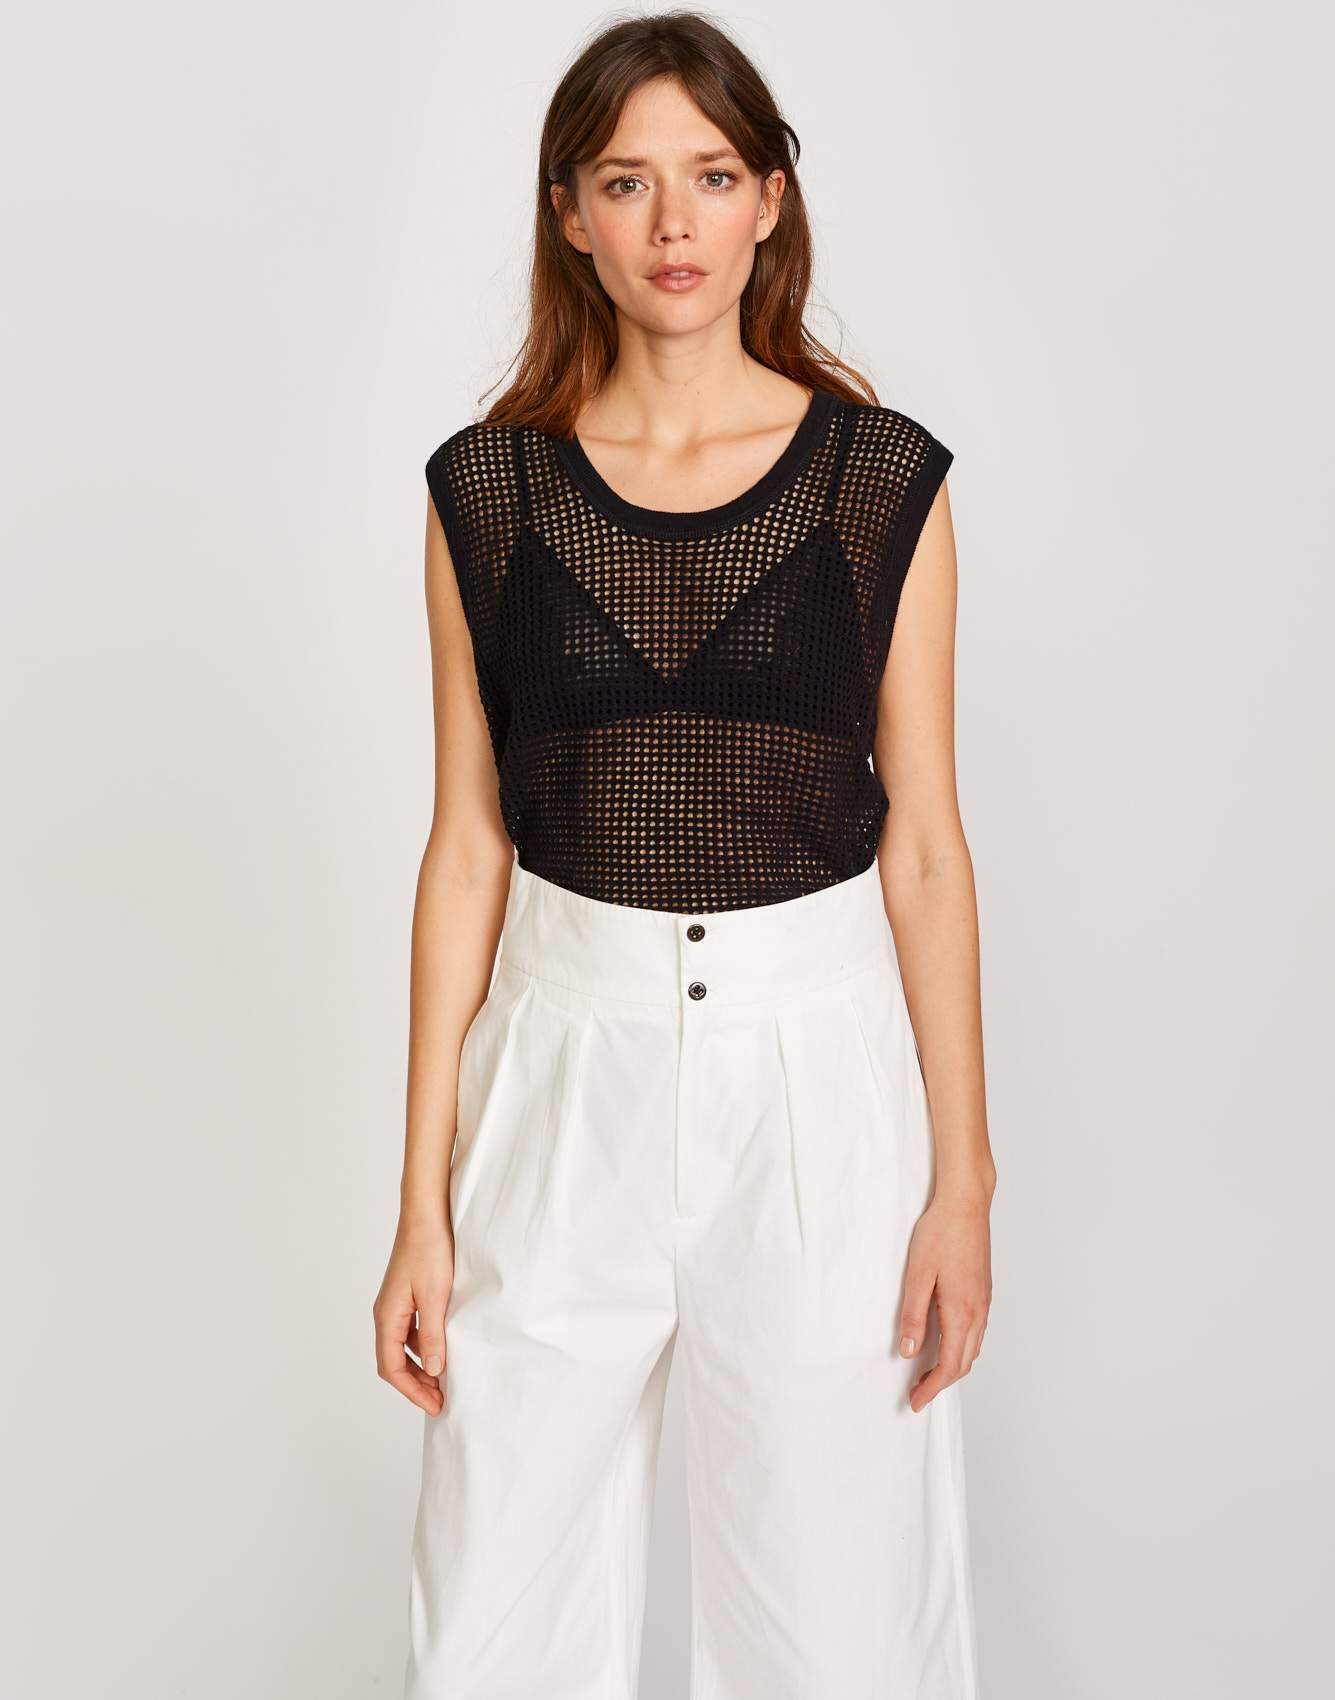 Bellerose black mesh knitwear for women